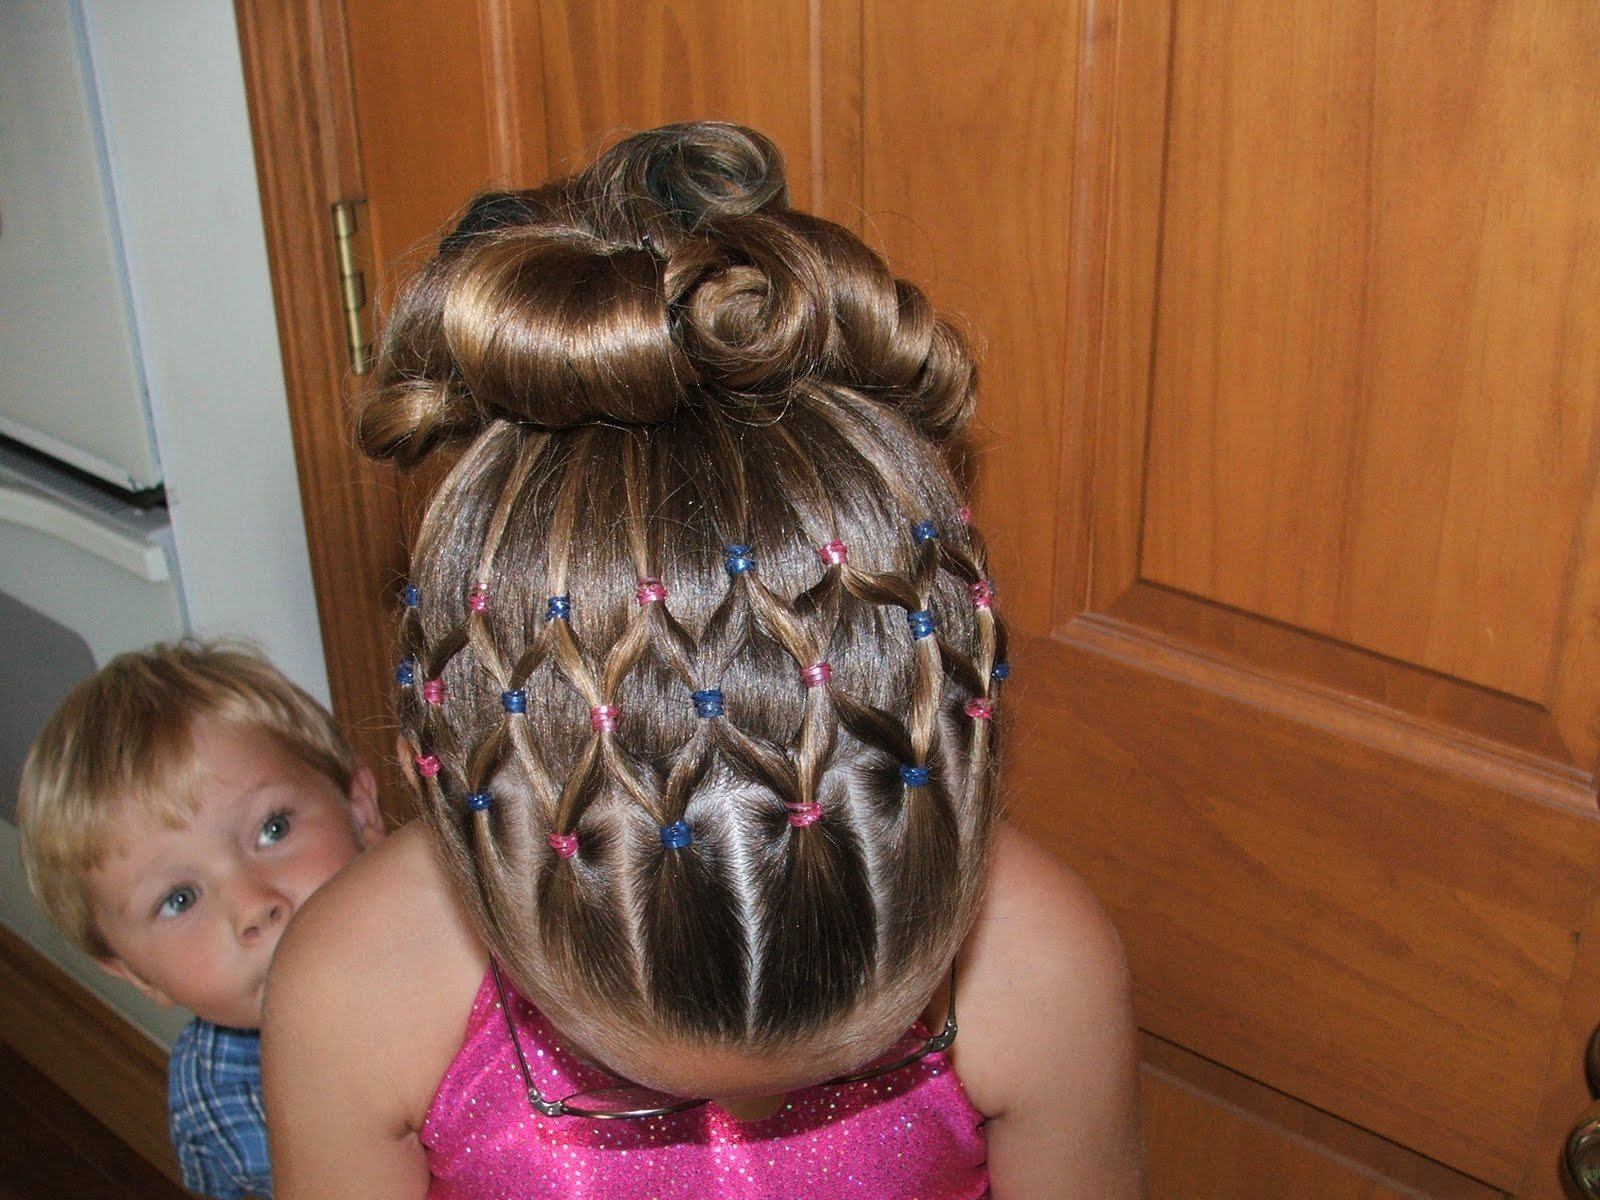 The Best 10 Things To Consider Before Choosing Cute Hairstyles For Pictures Original 1024 x 768